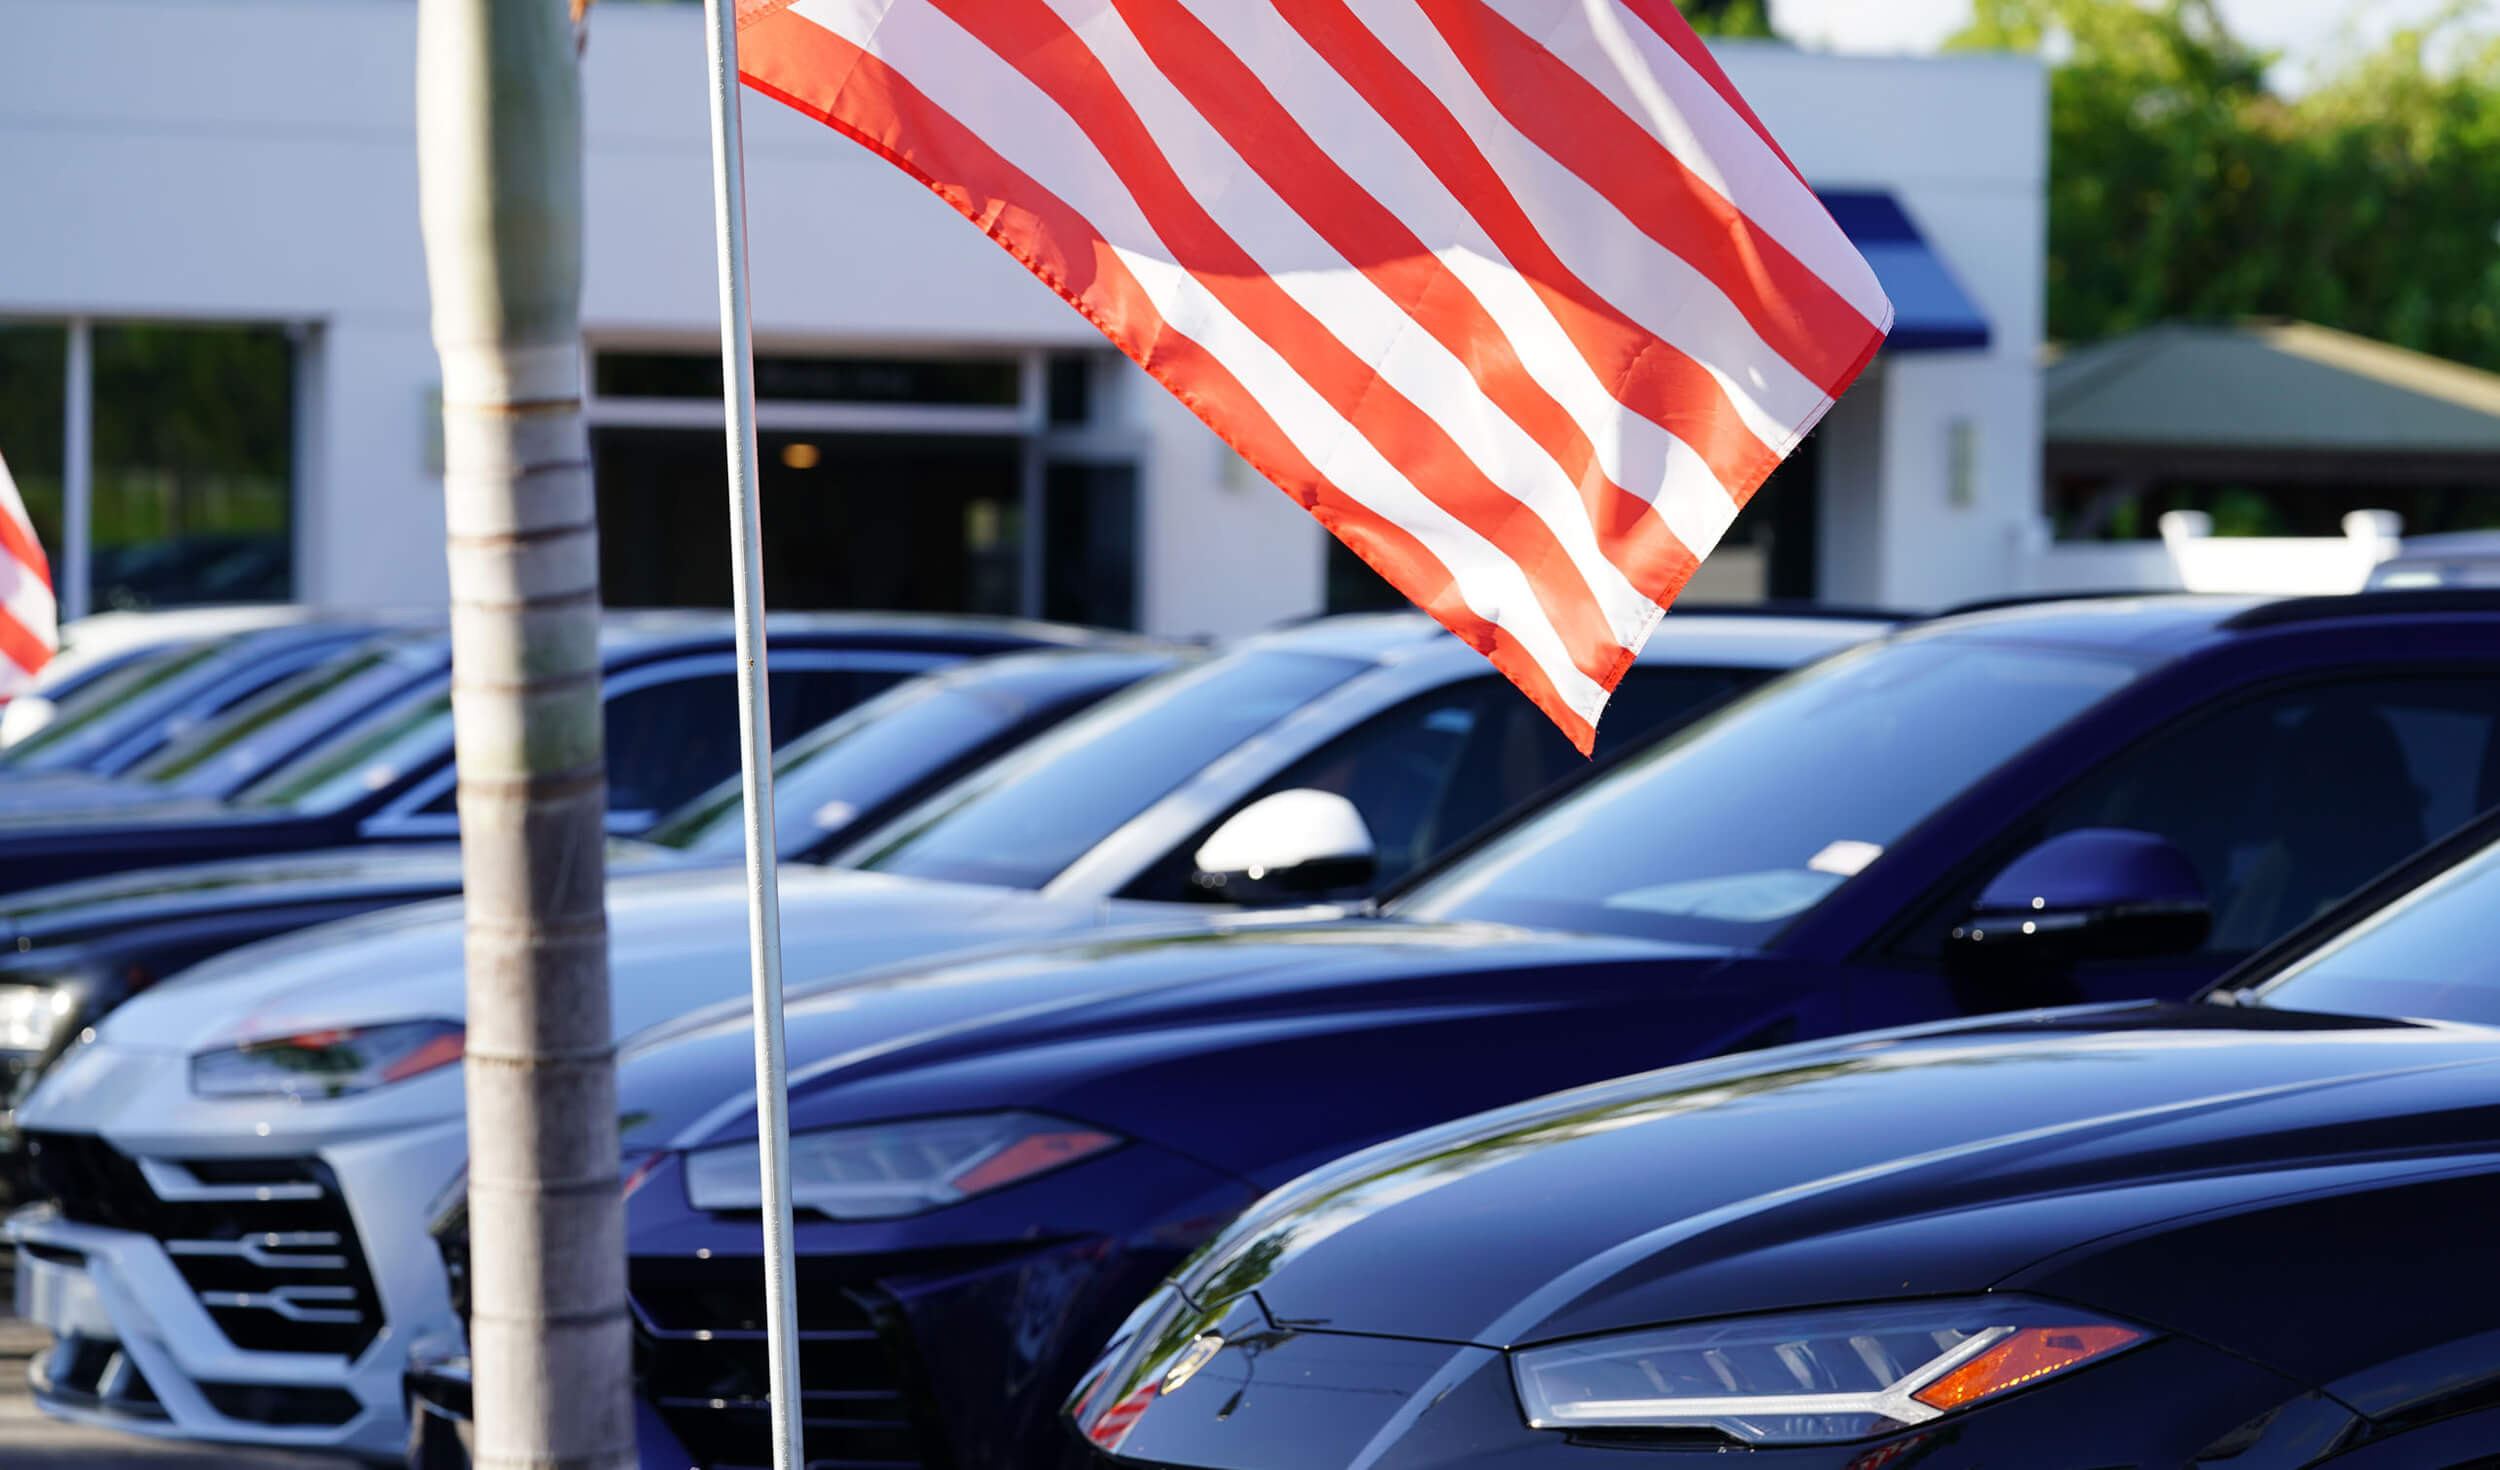 Exterior image of Palm Beach Auto Group dealership: closeup of flag with line of cars as background.